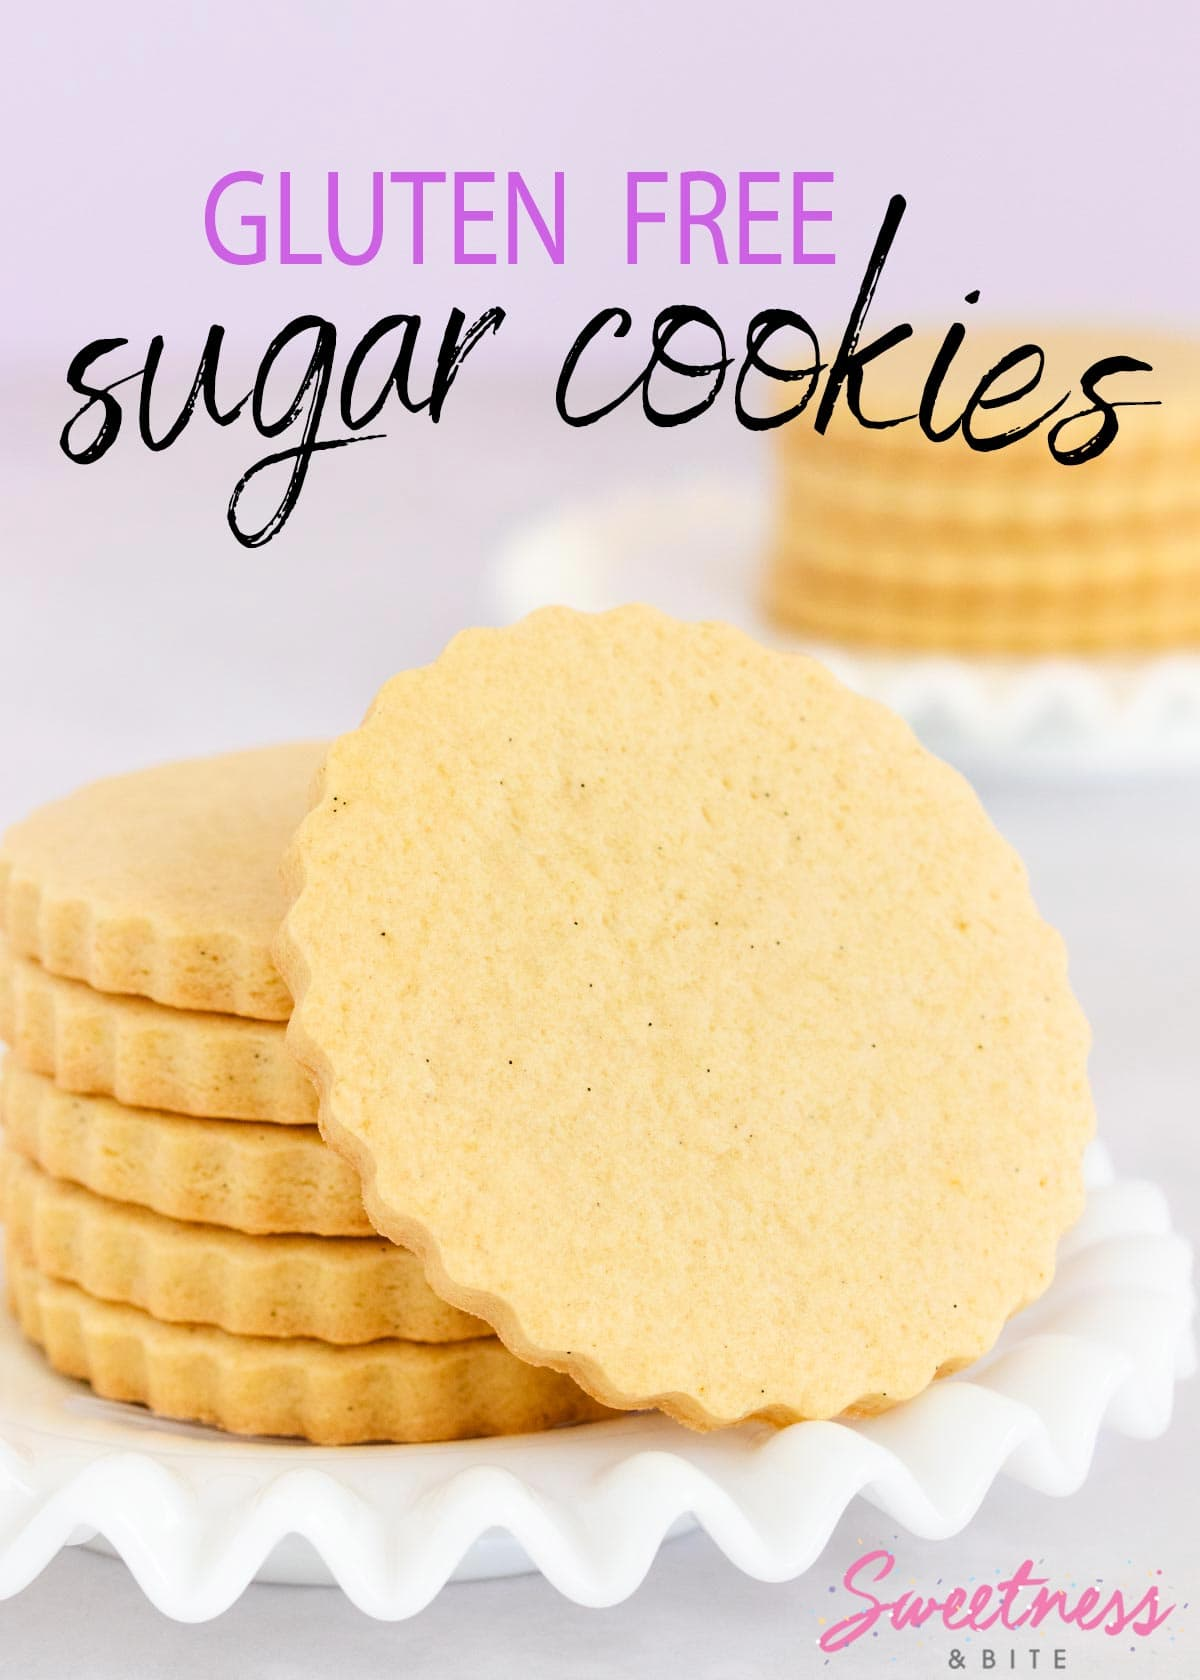 A stack of gluten free sugar cookies on a white plate with a ruffled edge.